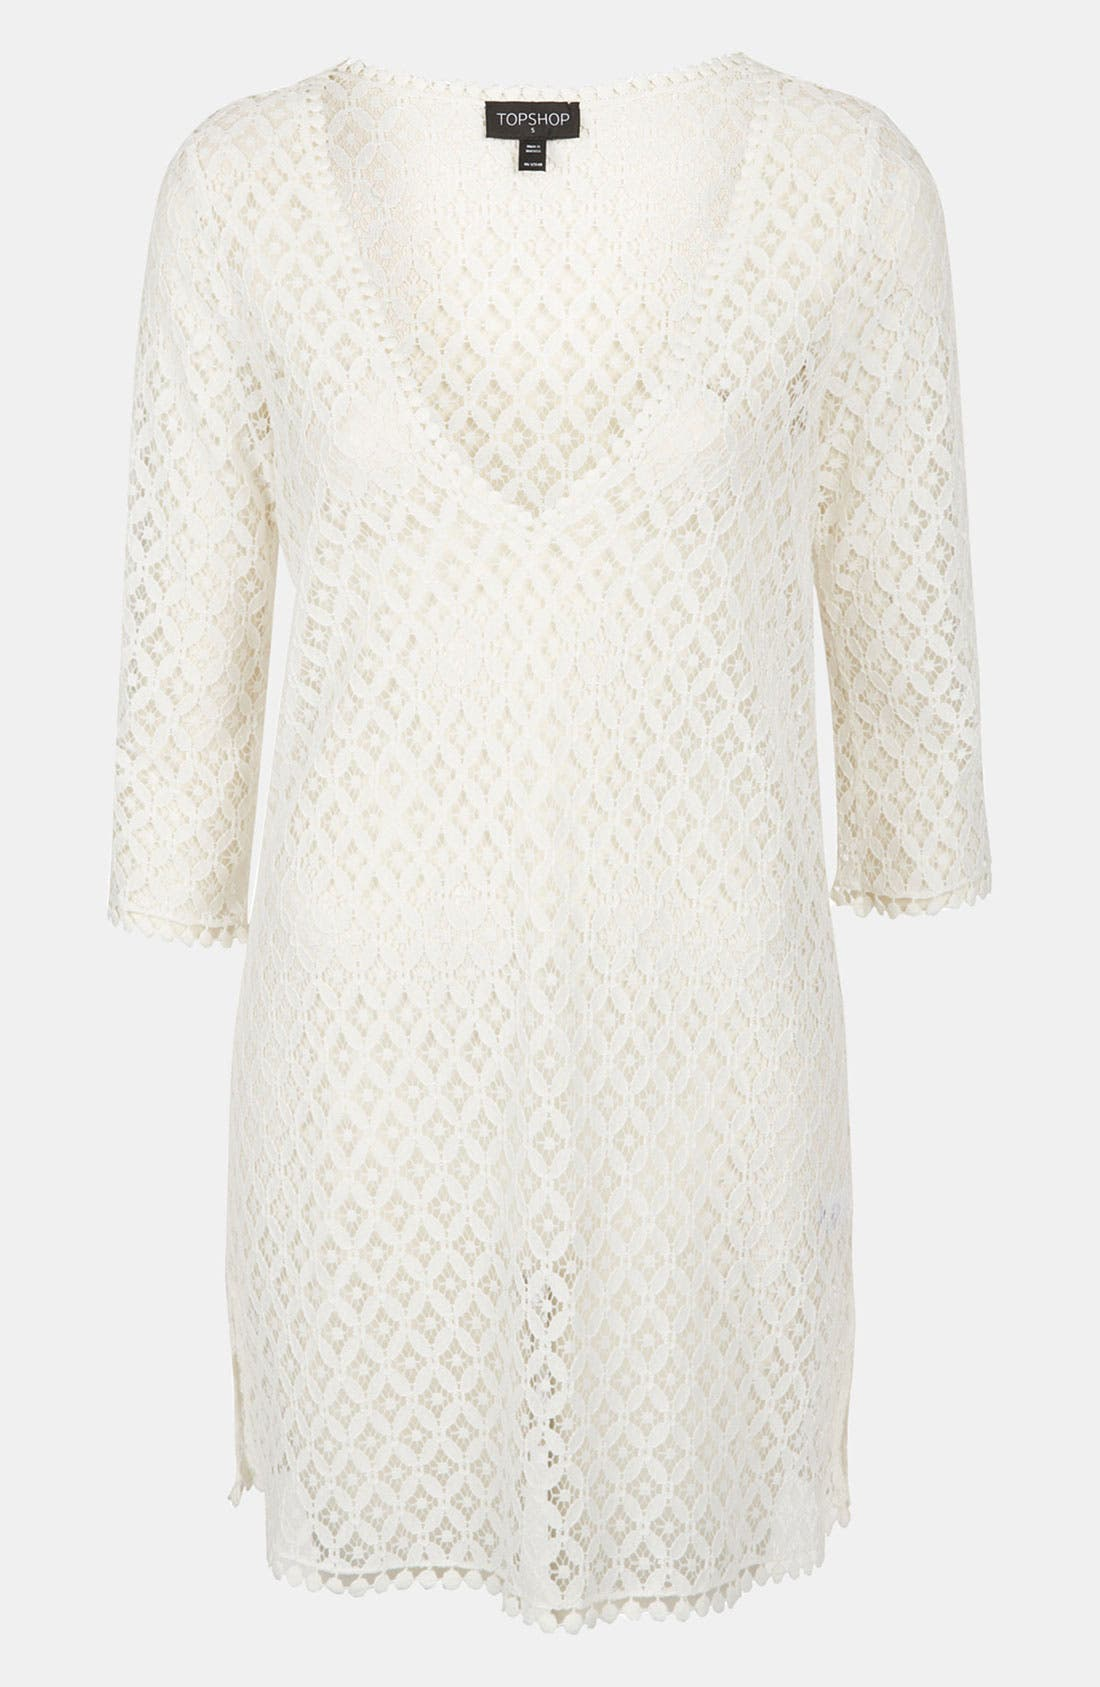 Alternate Image 1 Selected - Topshop 'Lizzie' Lace Cover-Up